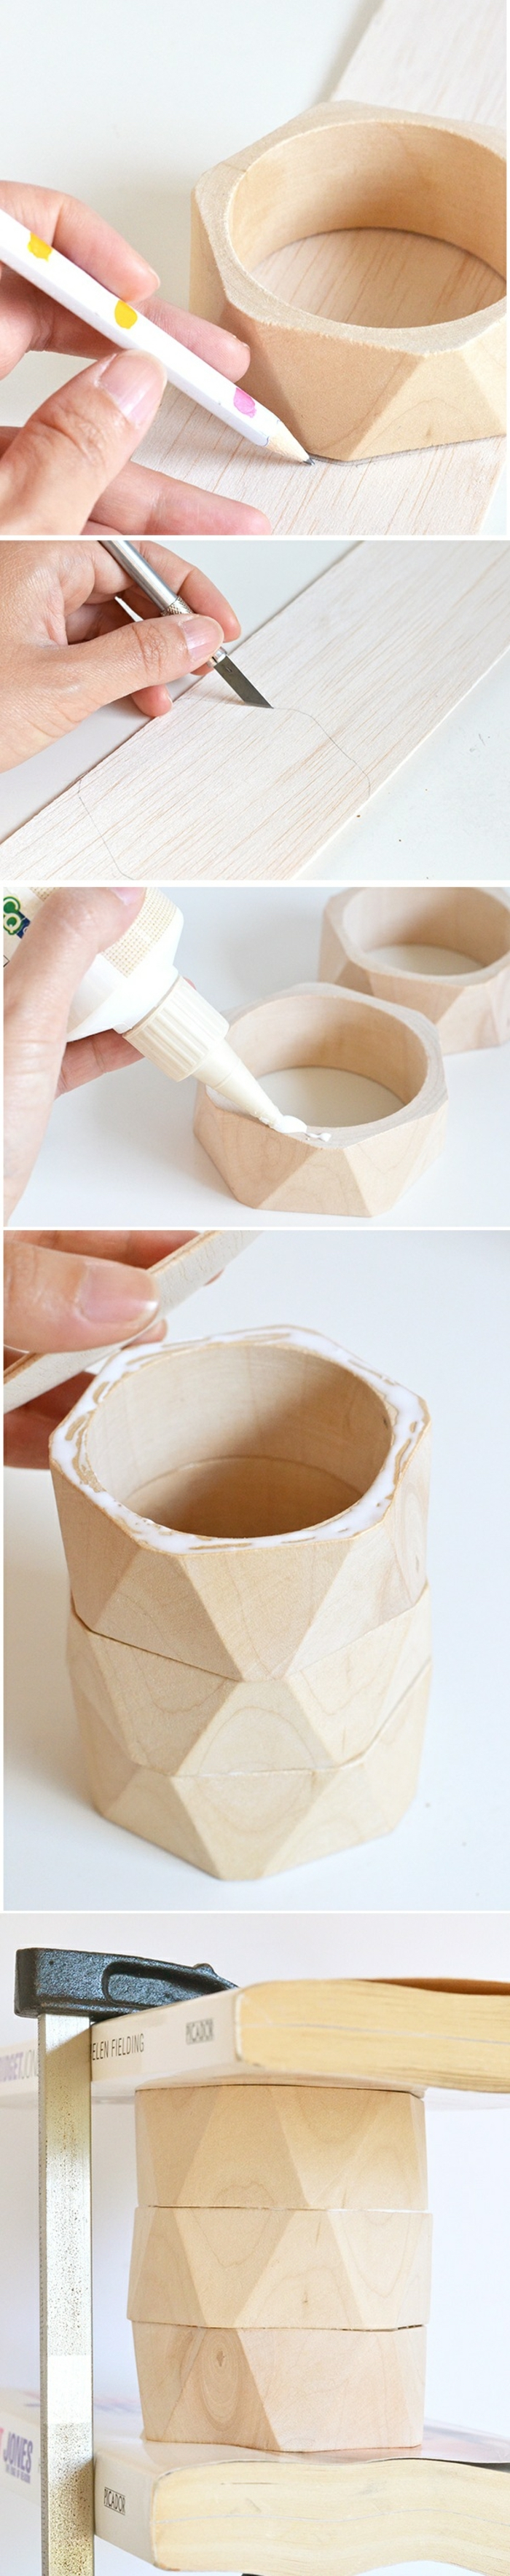 wood bangles, glued together, step by step, cool diys, diy tutorial